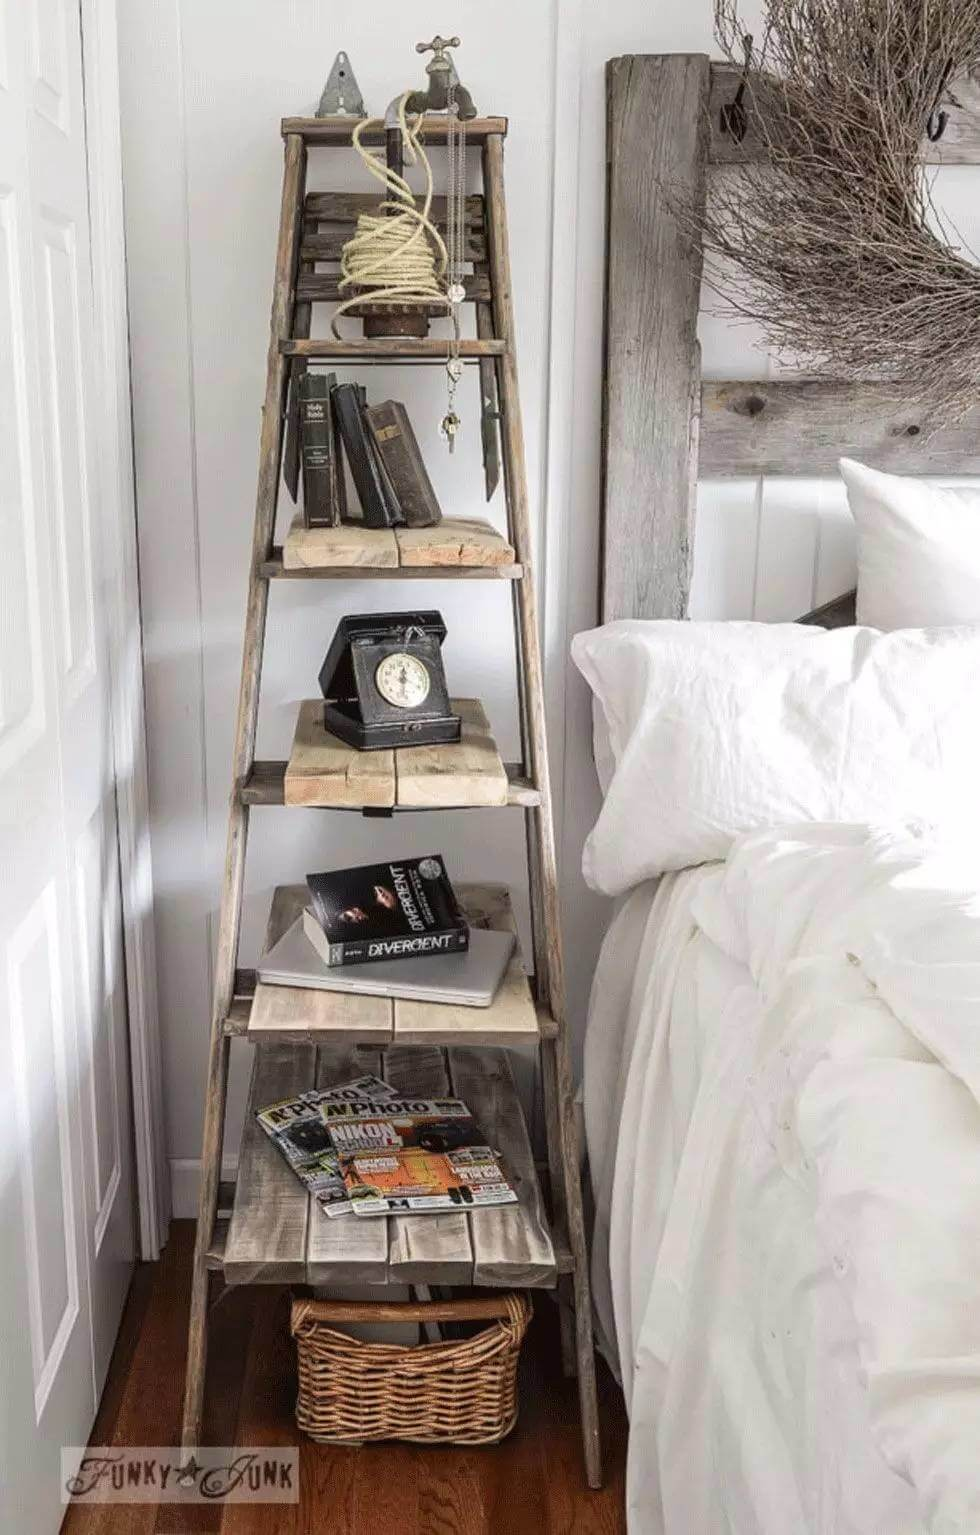 Marvelous Vintage Decor Part - 13: 17. Upcycled Orchard Ladder Turned Nightstand